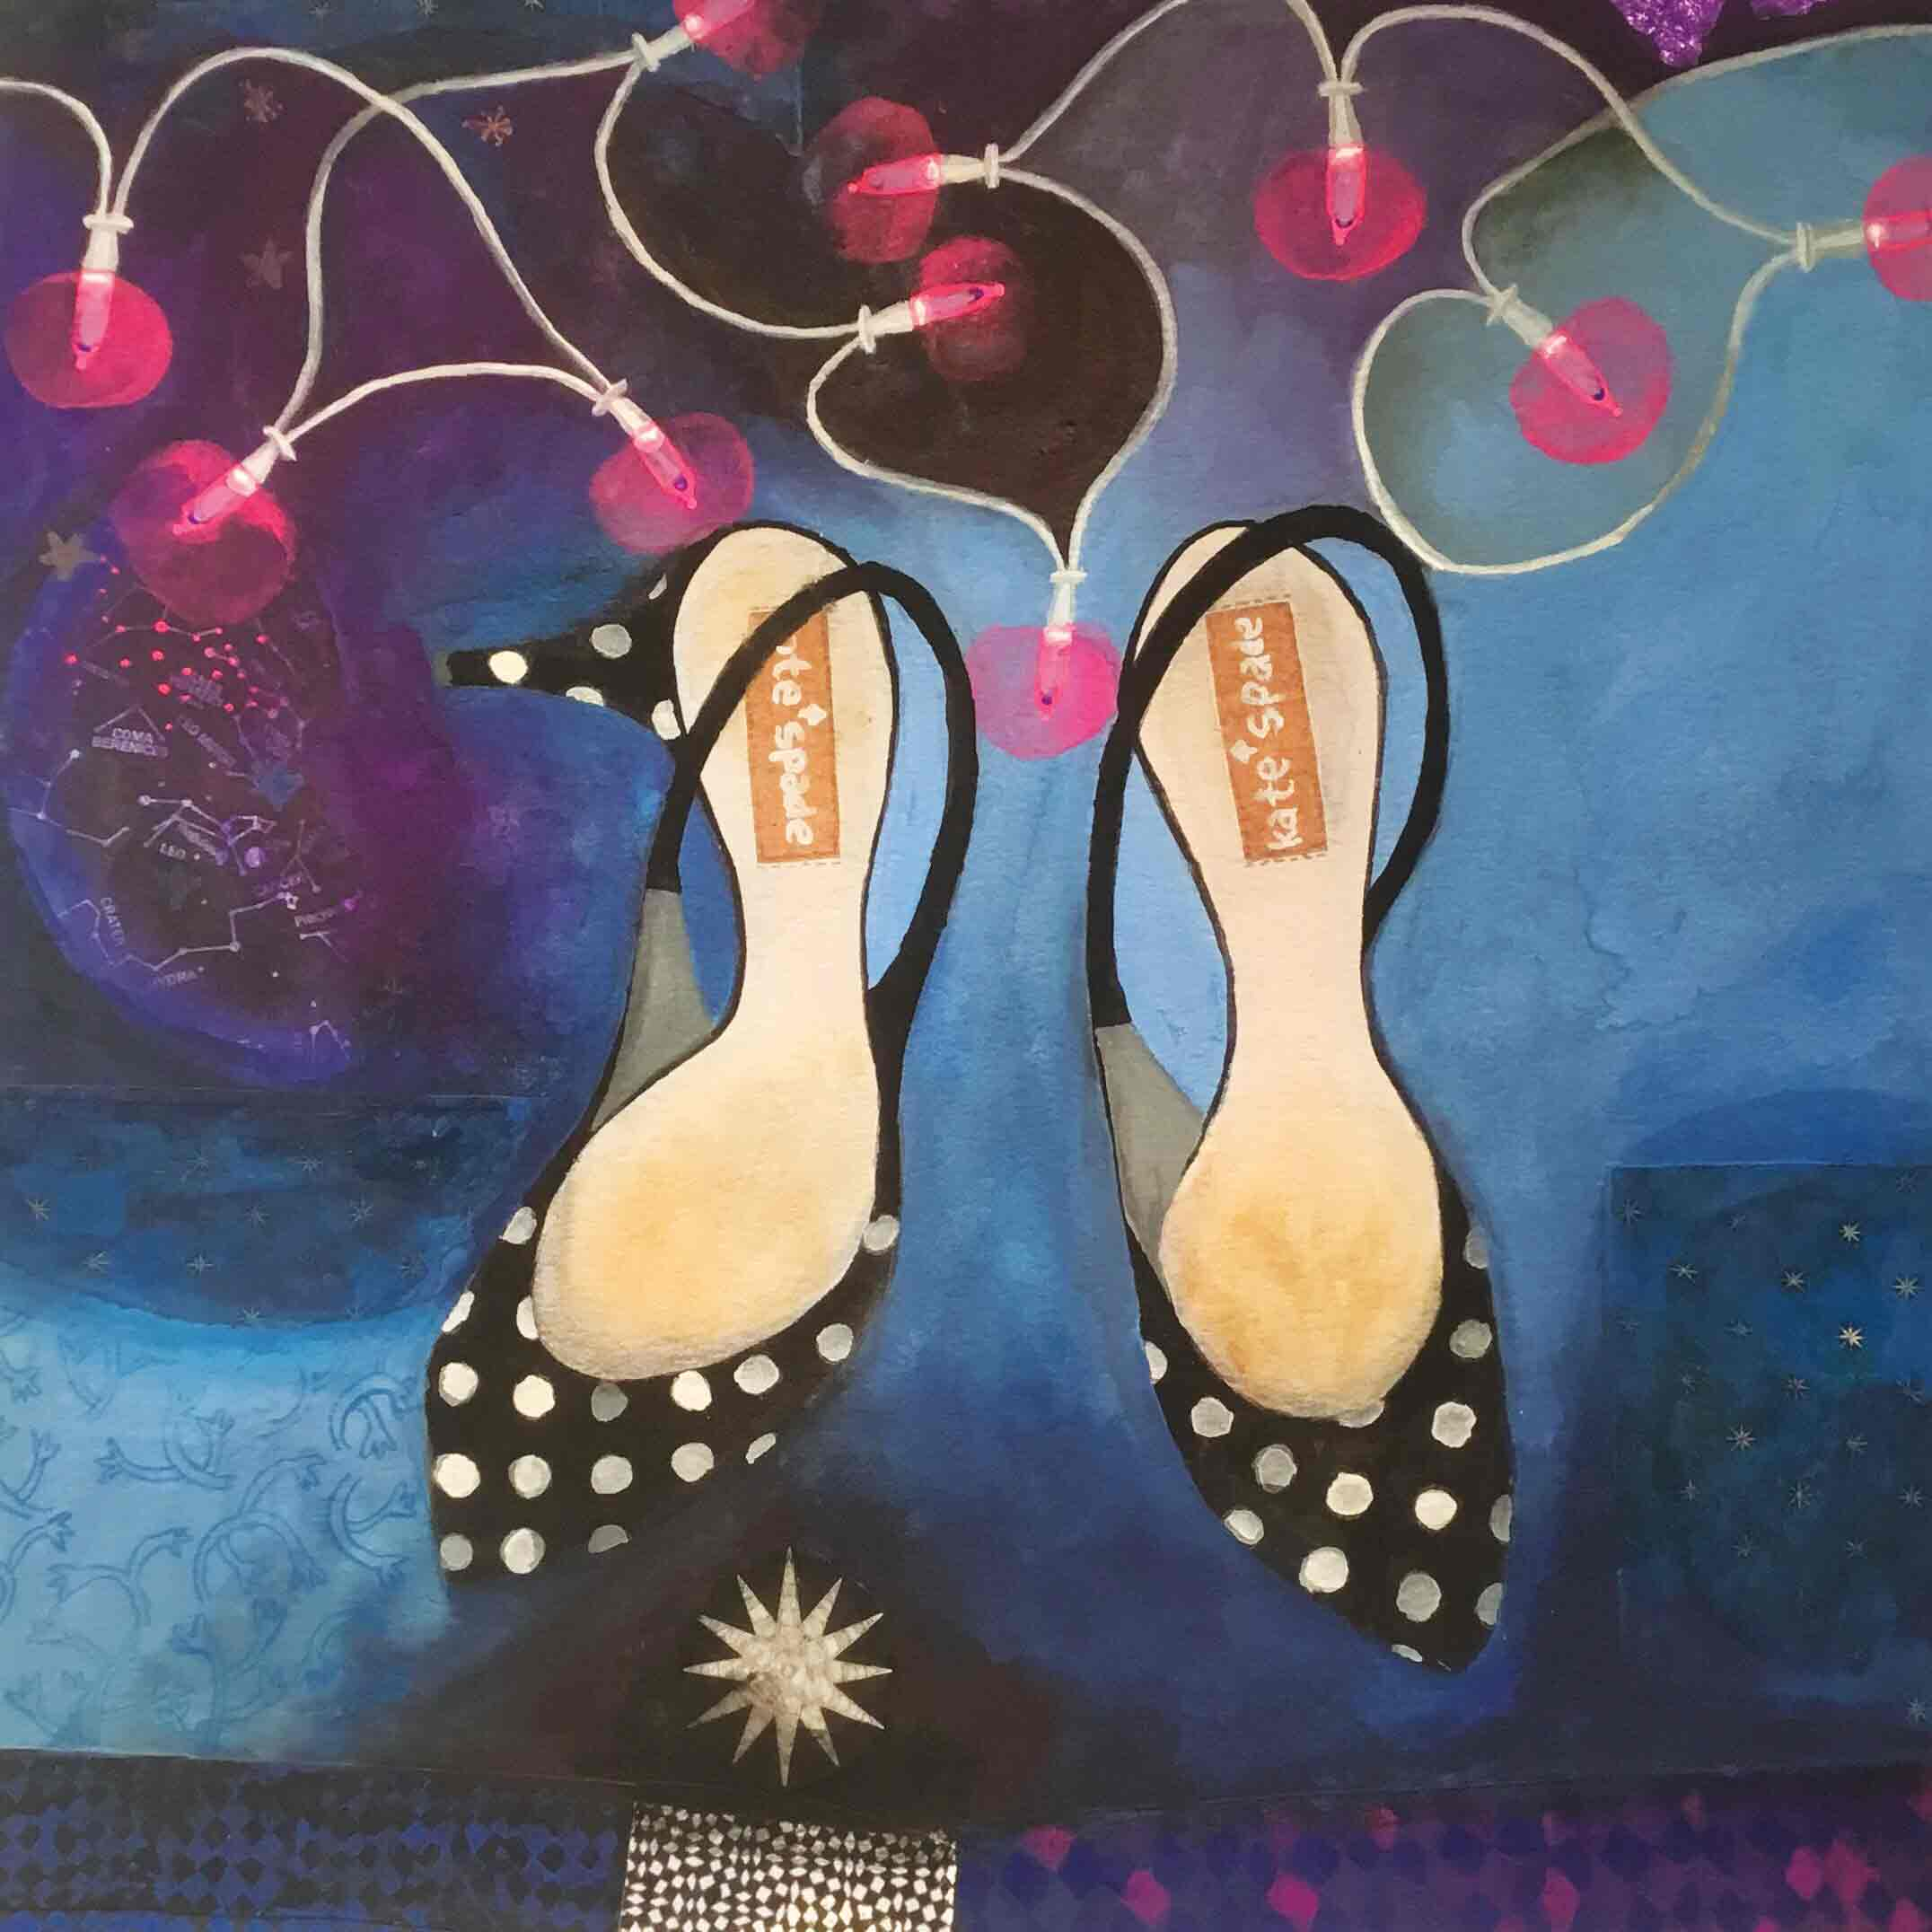 Art Greeting Card by Gertie Young, Kitten Heels and Fairy Lights, Watercolour and Gouache, Kitten heel shoes and fairy lights